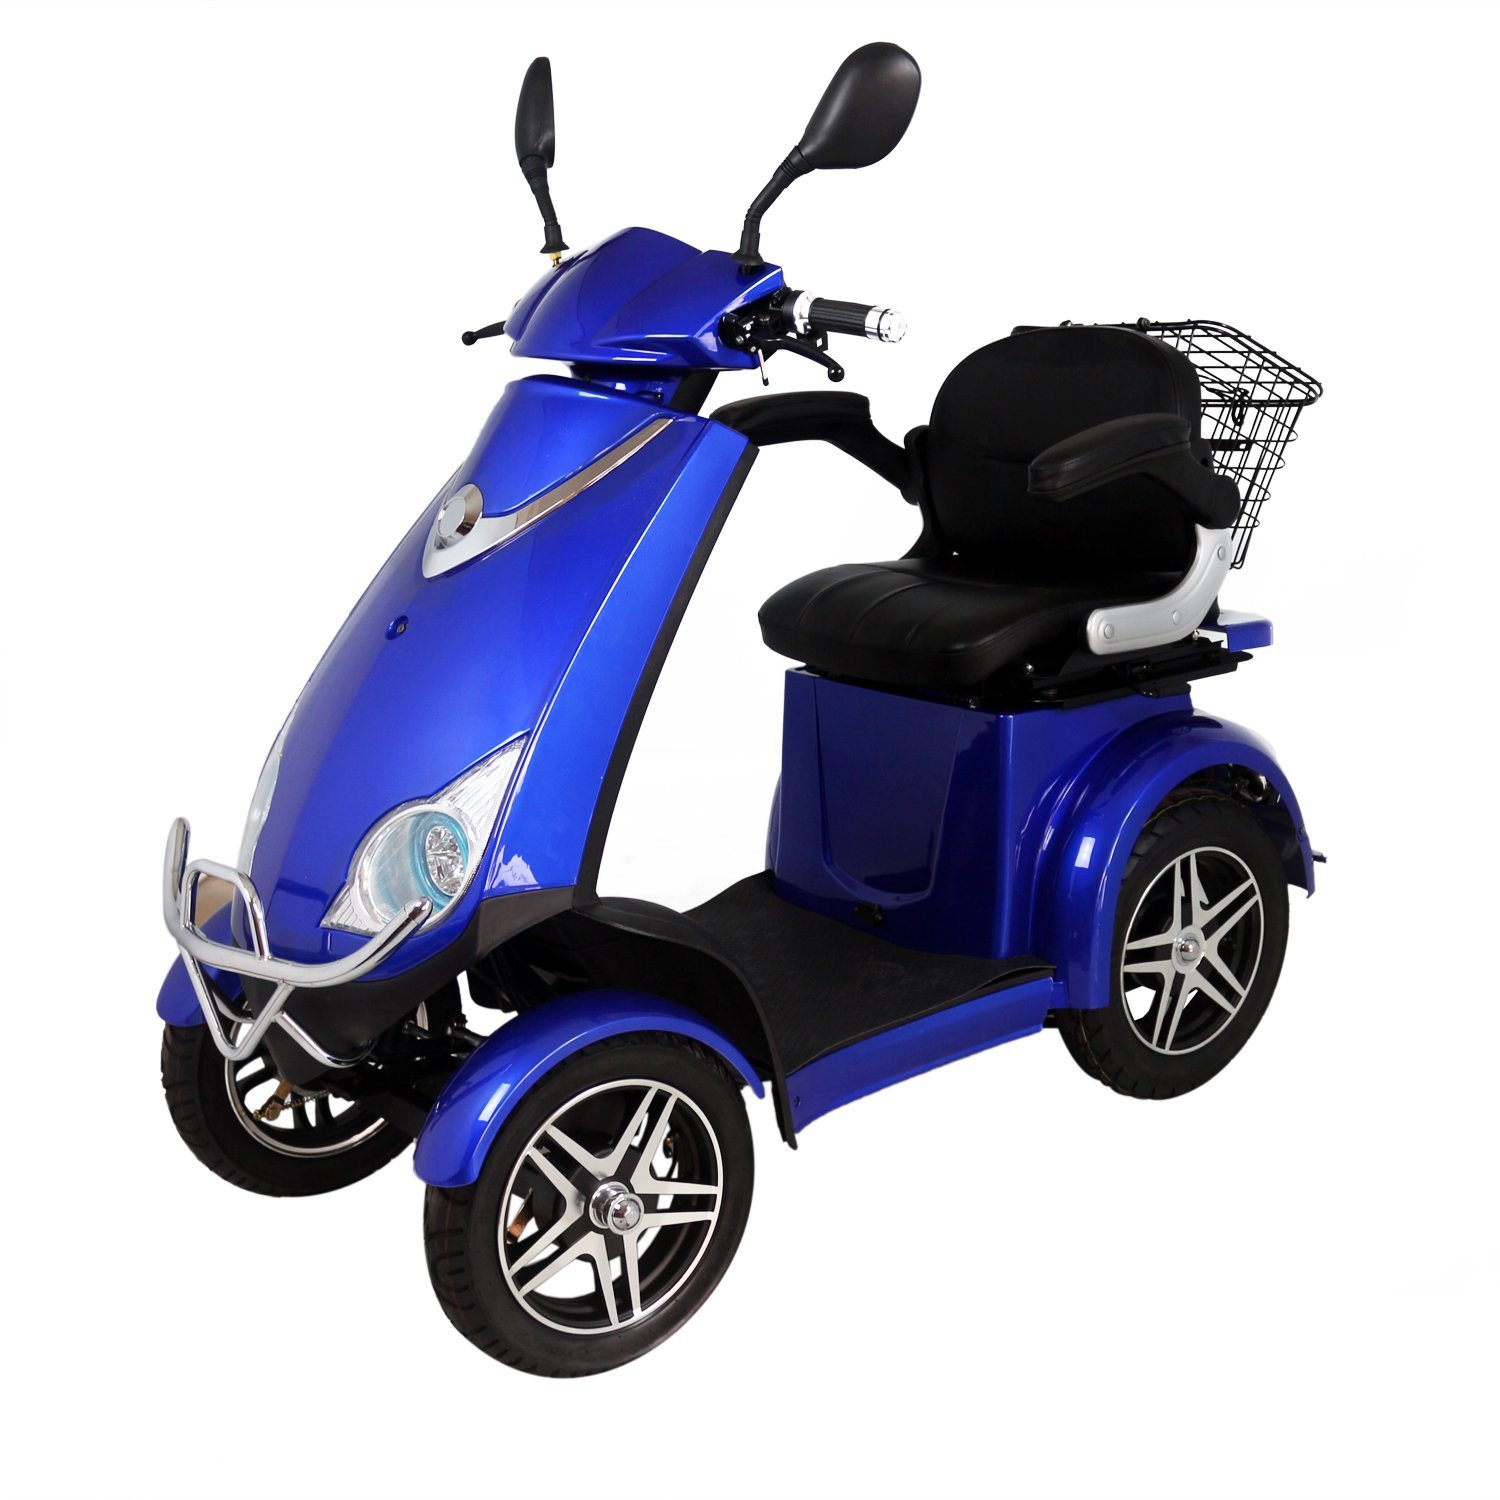 China Factory Supply Cheap Price Electric Mobility Scooter & E-Scooter